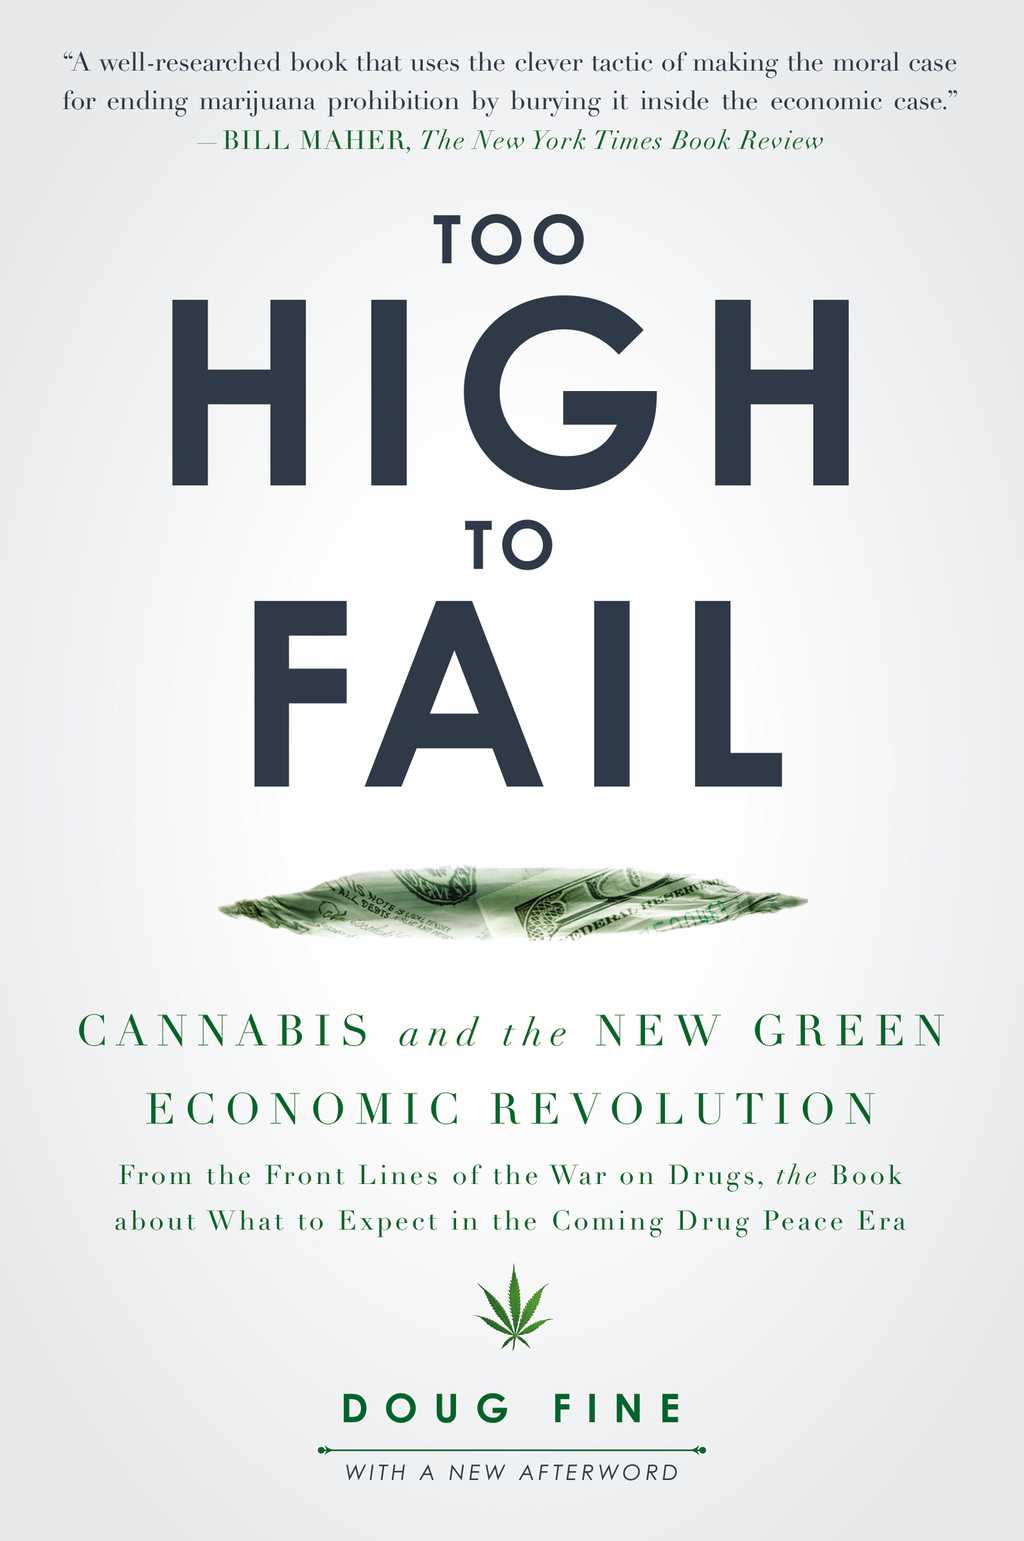 Too High to Fail Cannabis and the New Green Economic Revolution